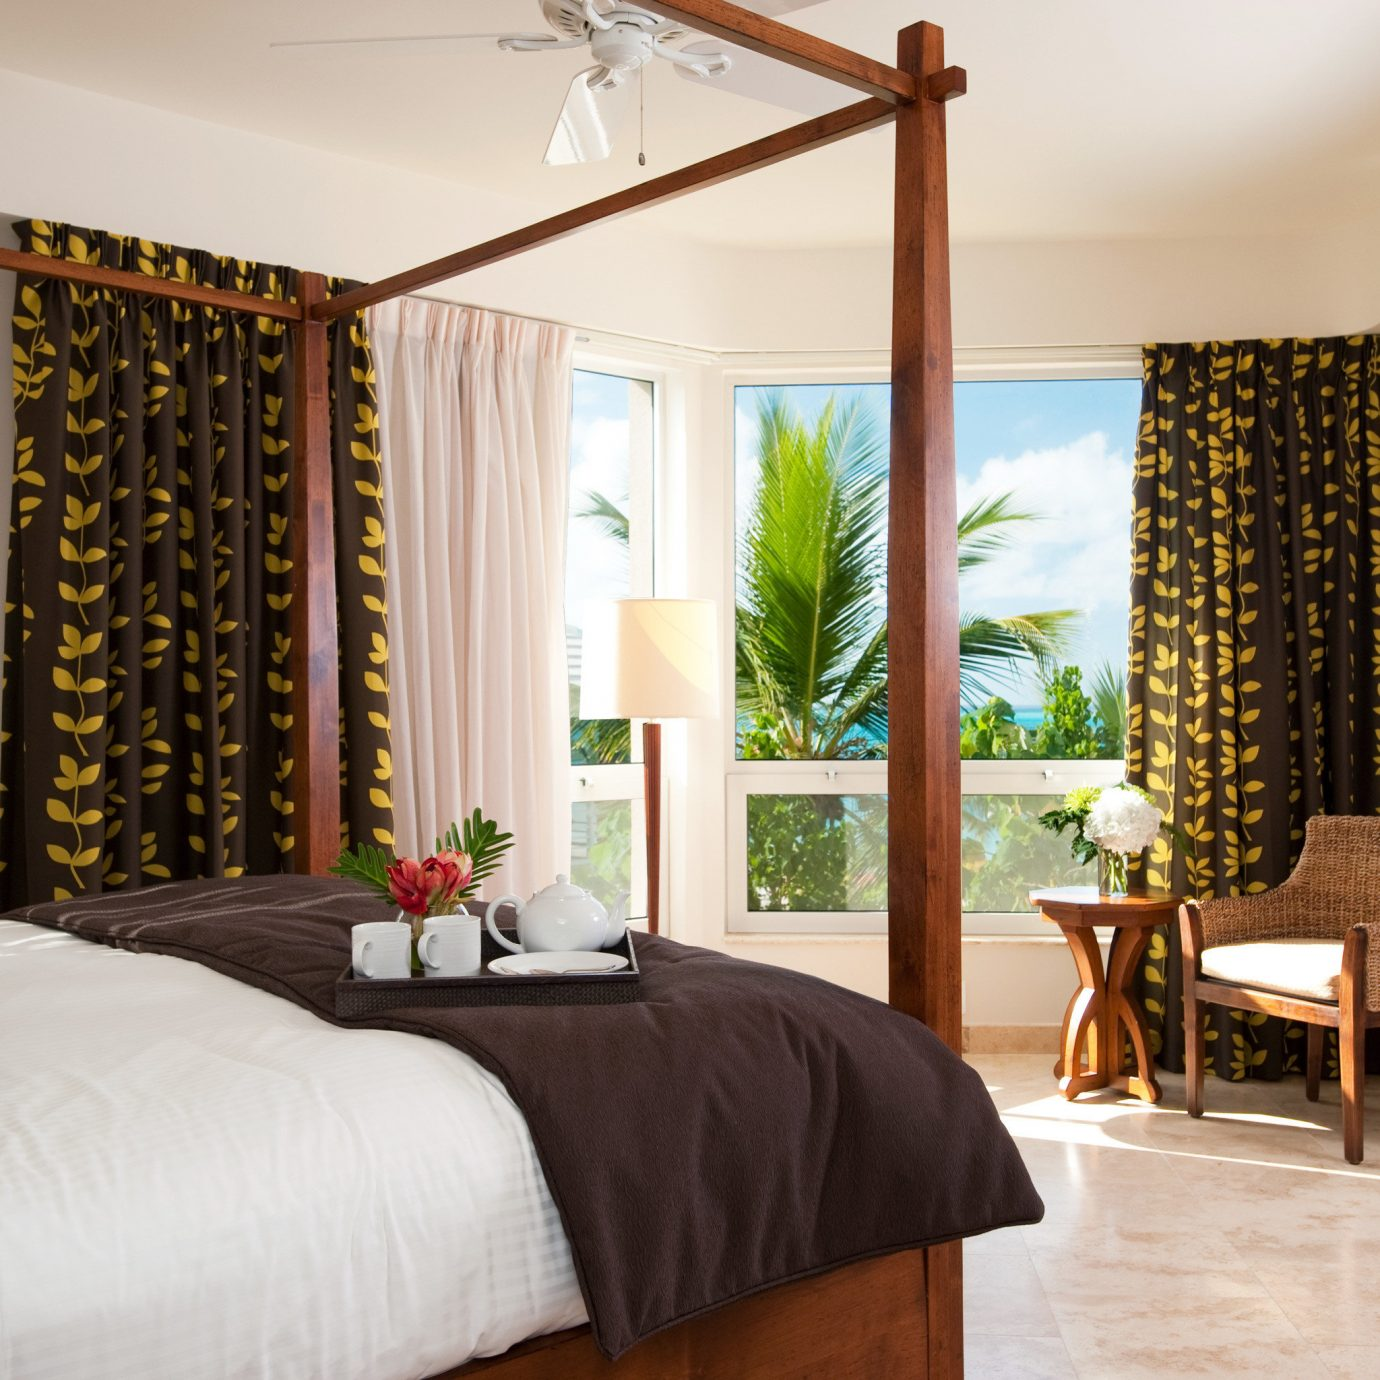 Beachfront Bedroom Luxury sofa property home living room cottage hardwood farmhouse condominium Suite Villa